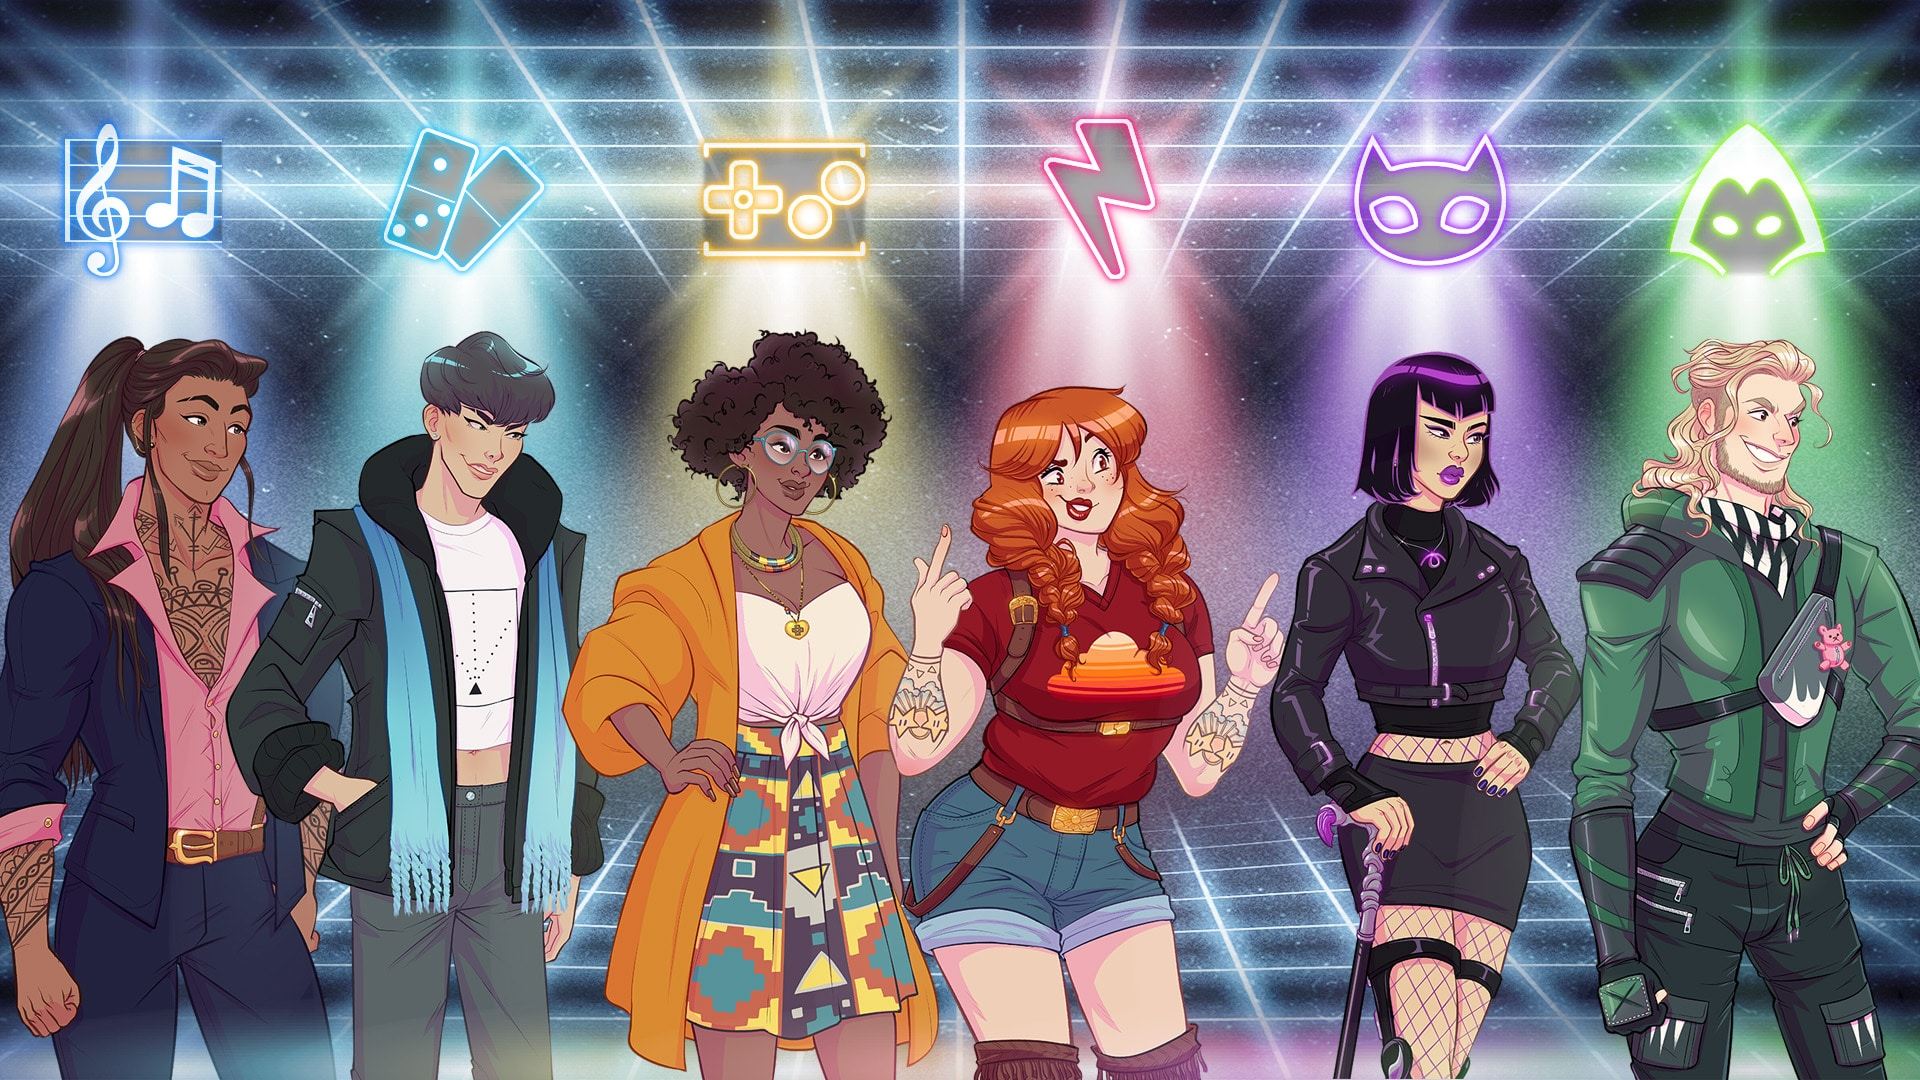 Arcade Spirits: The New Challengers offers the queer gaming future of our dreams